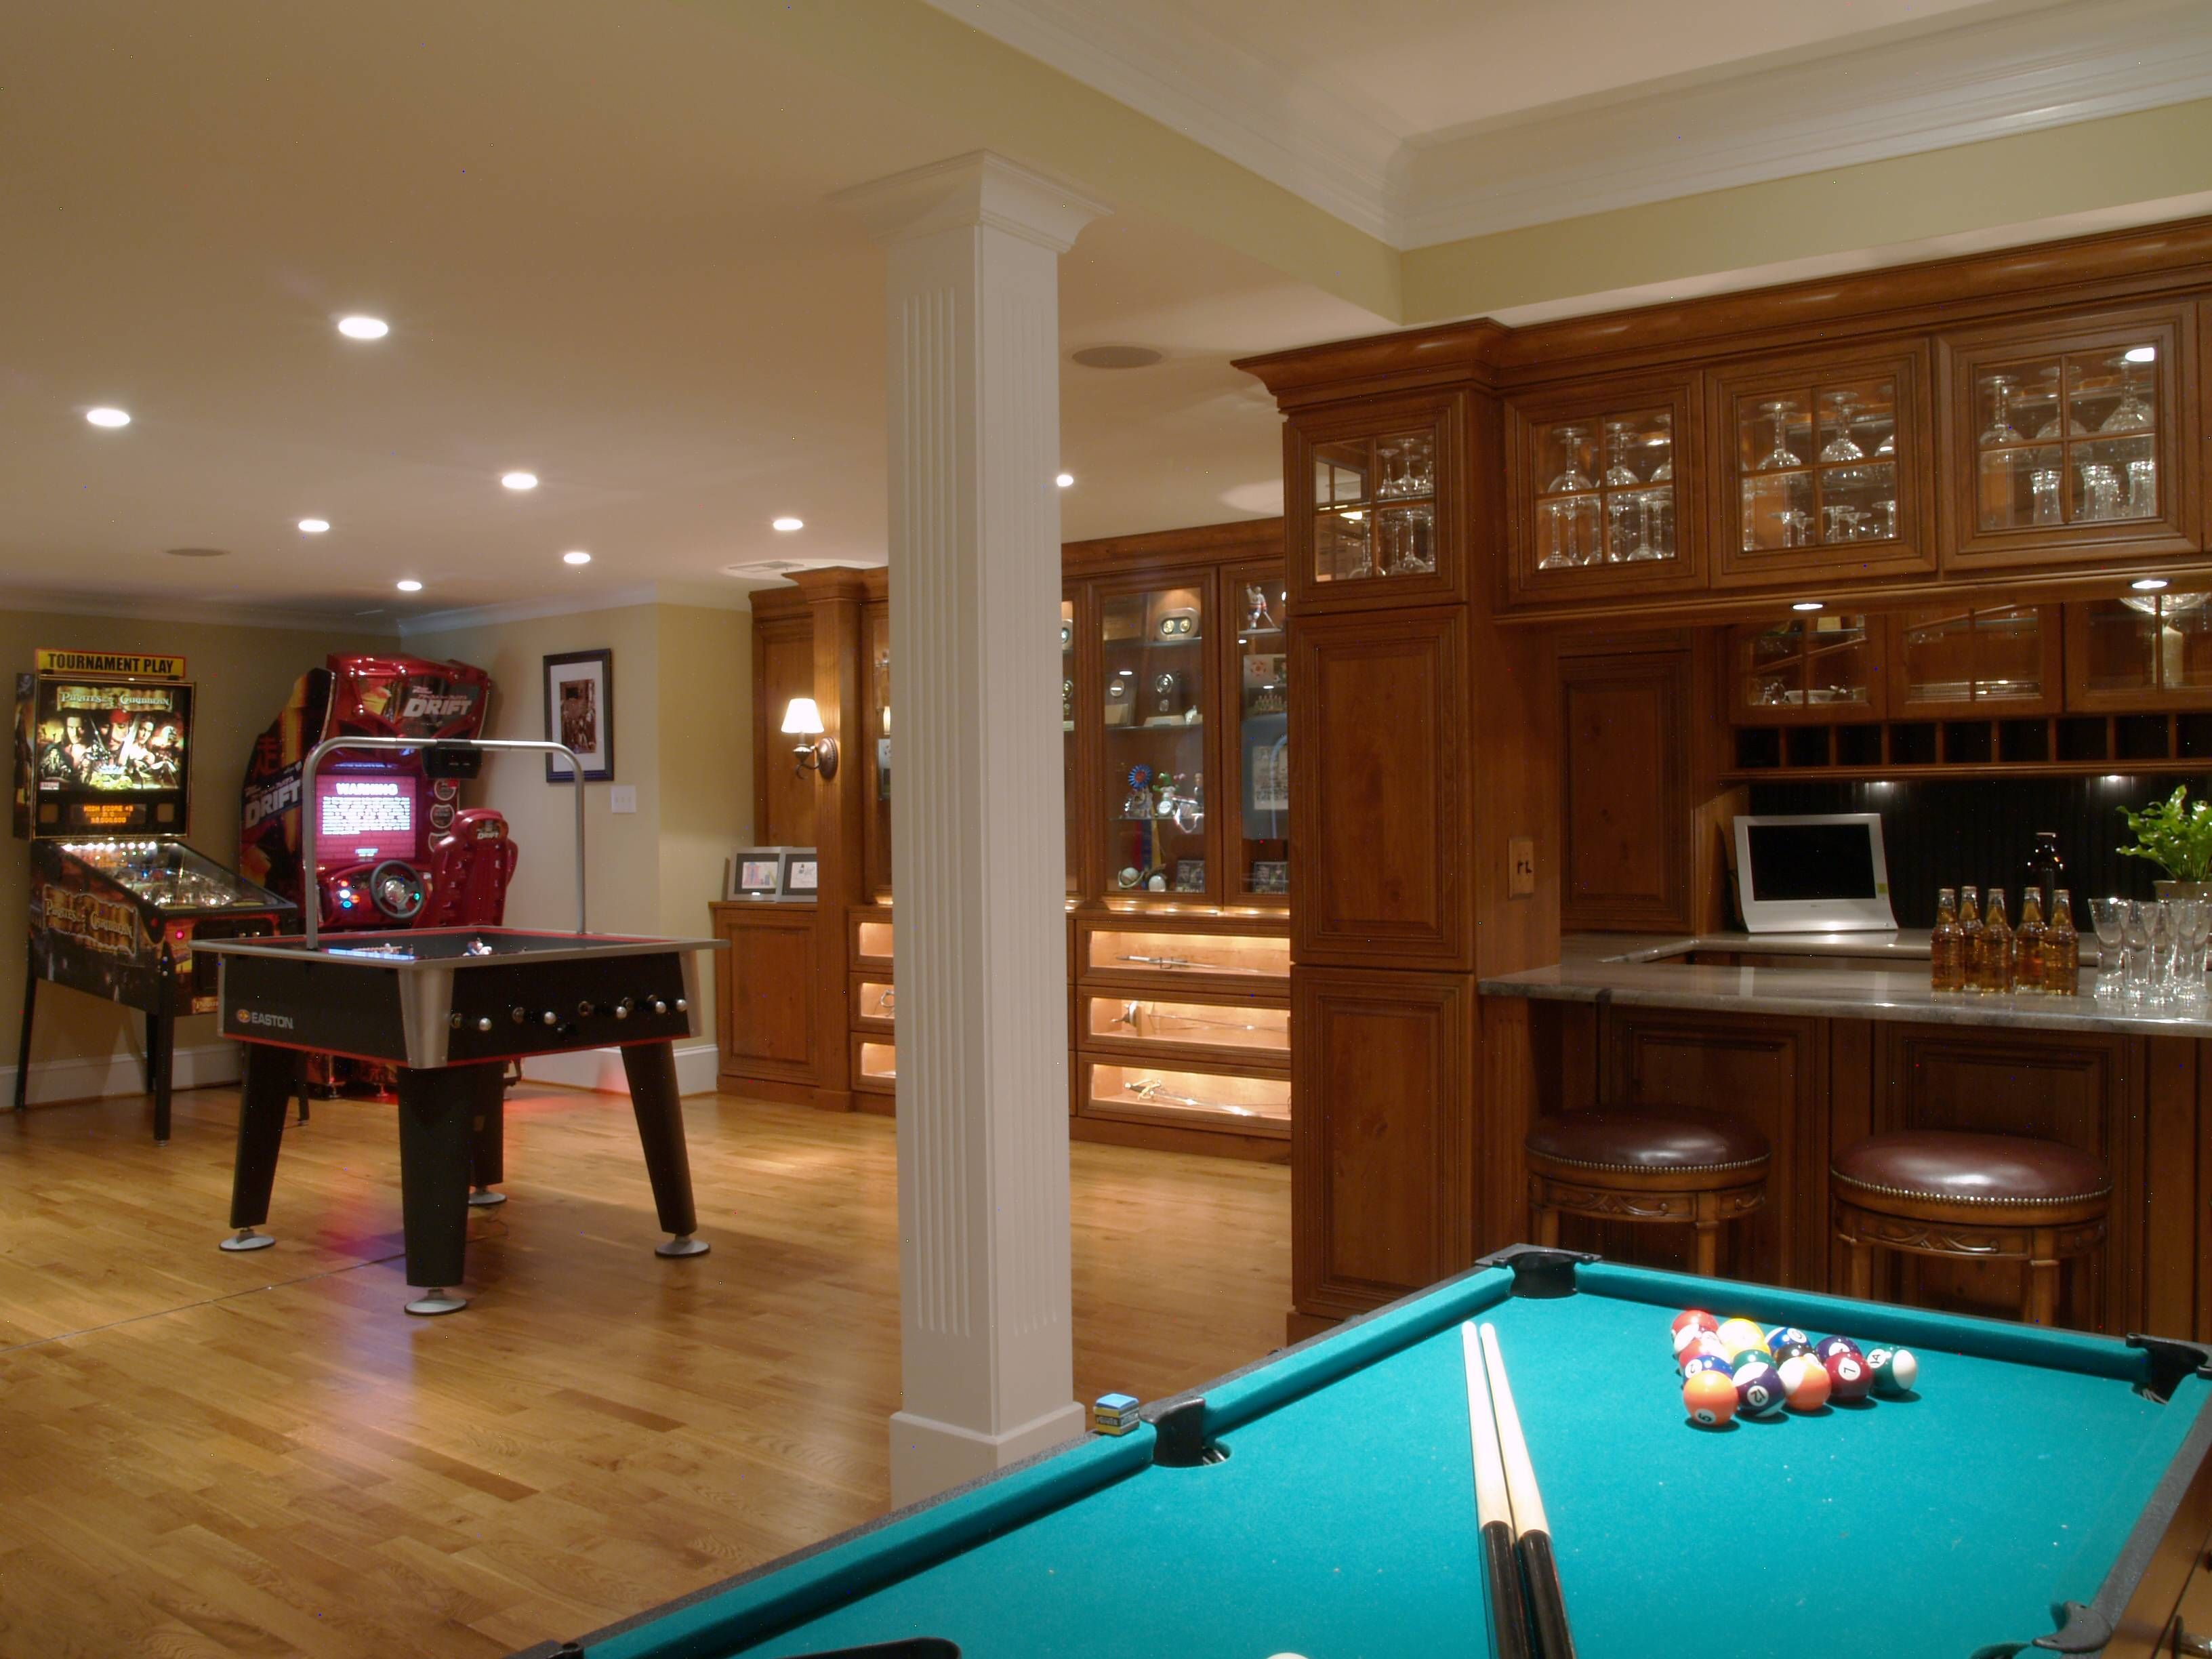 Also Home Game Room And Bar ) (Bar Is Less